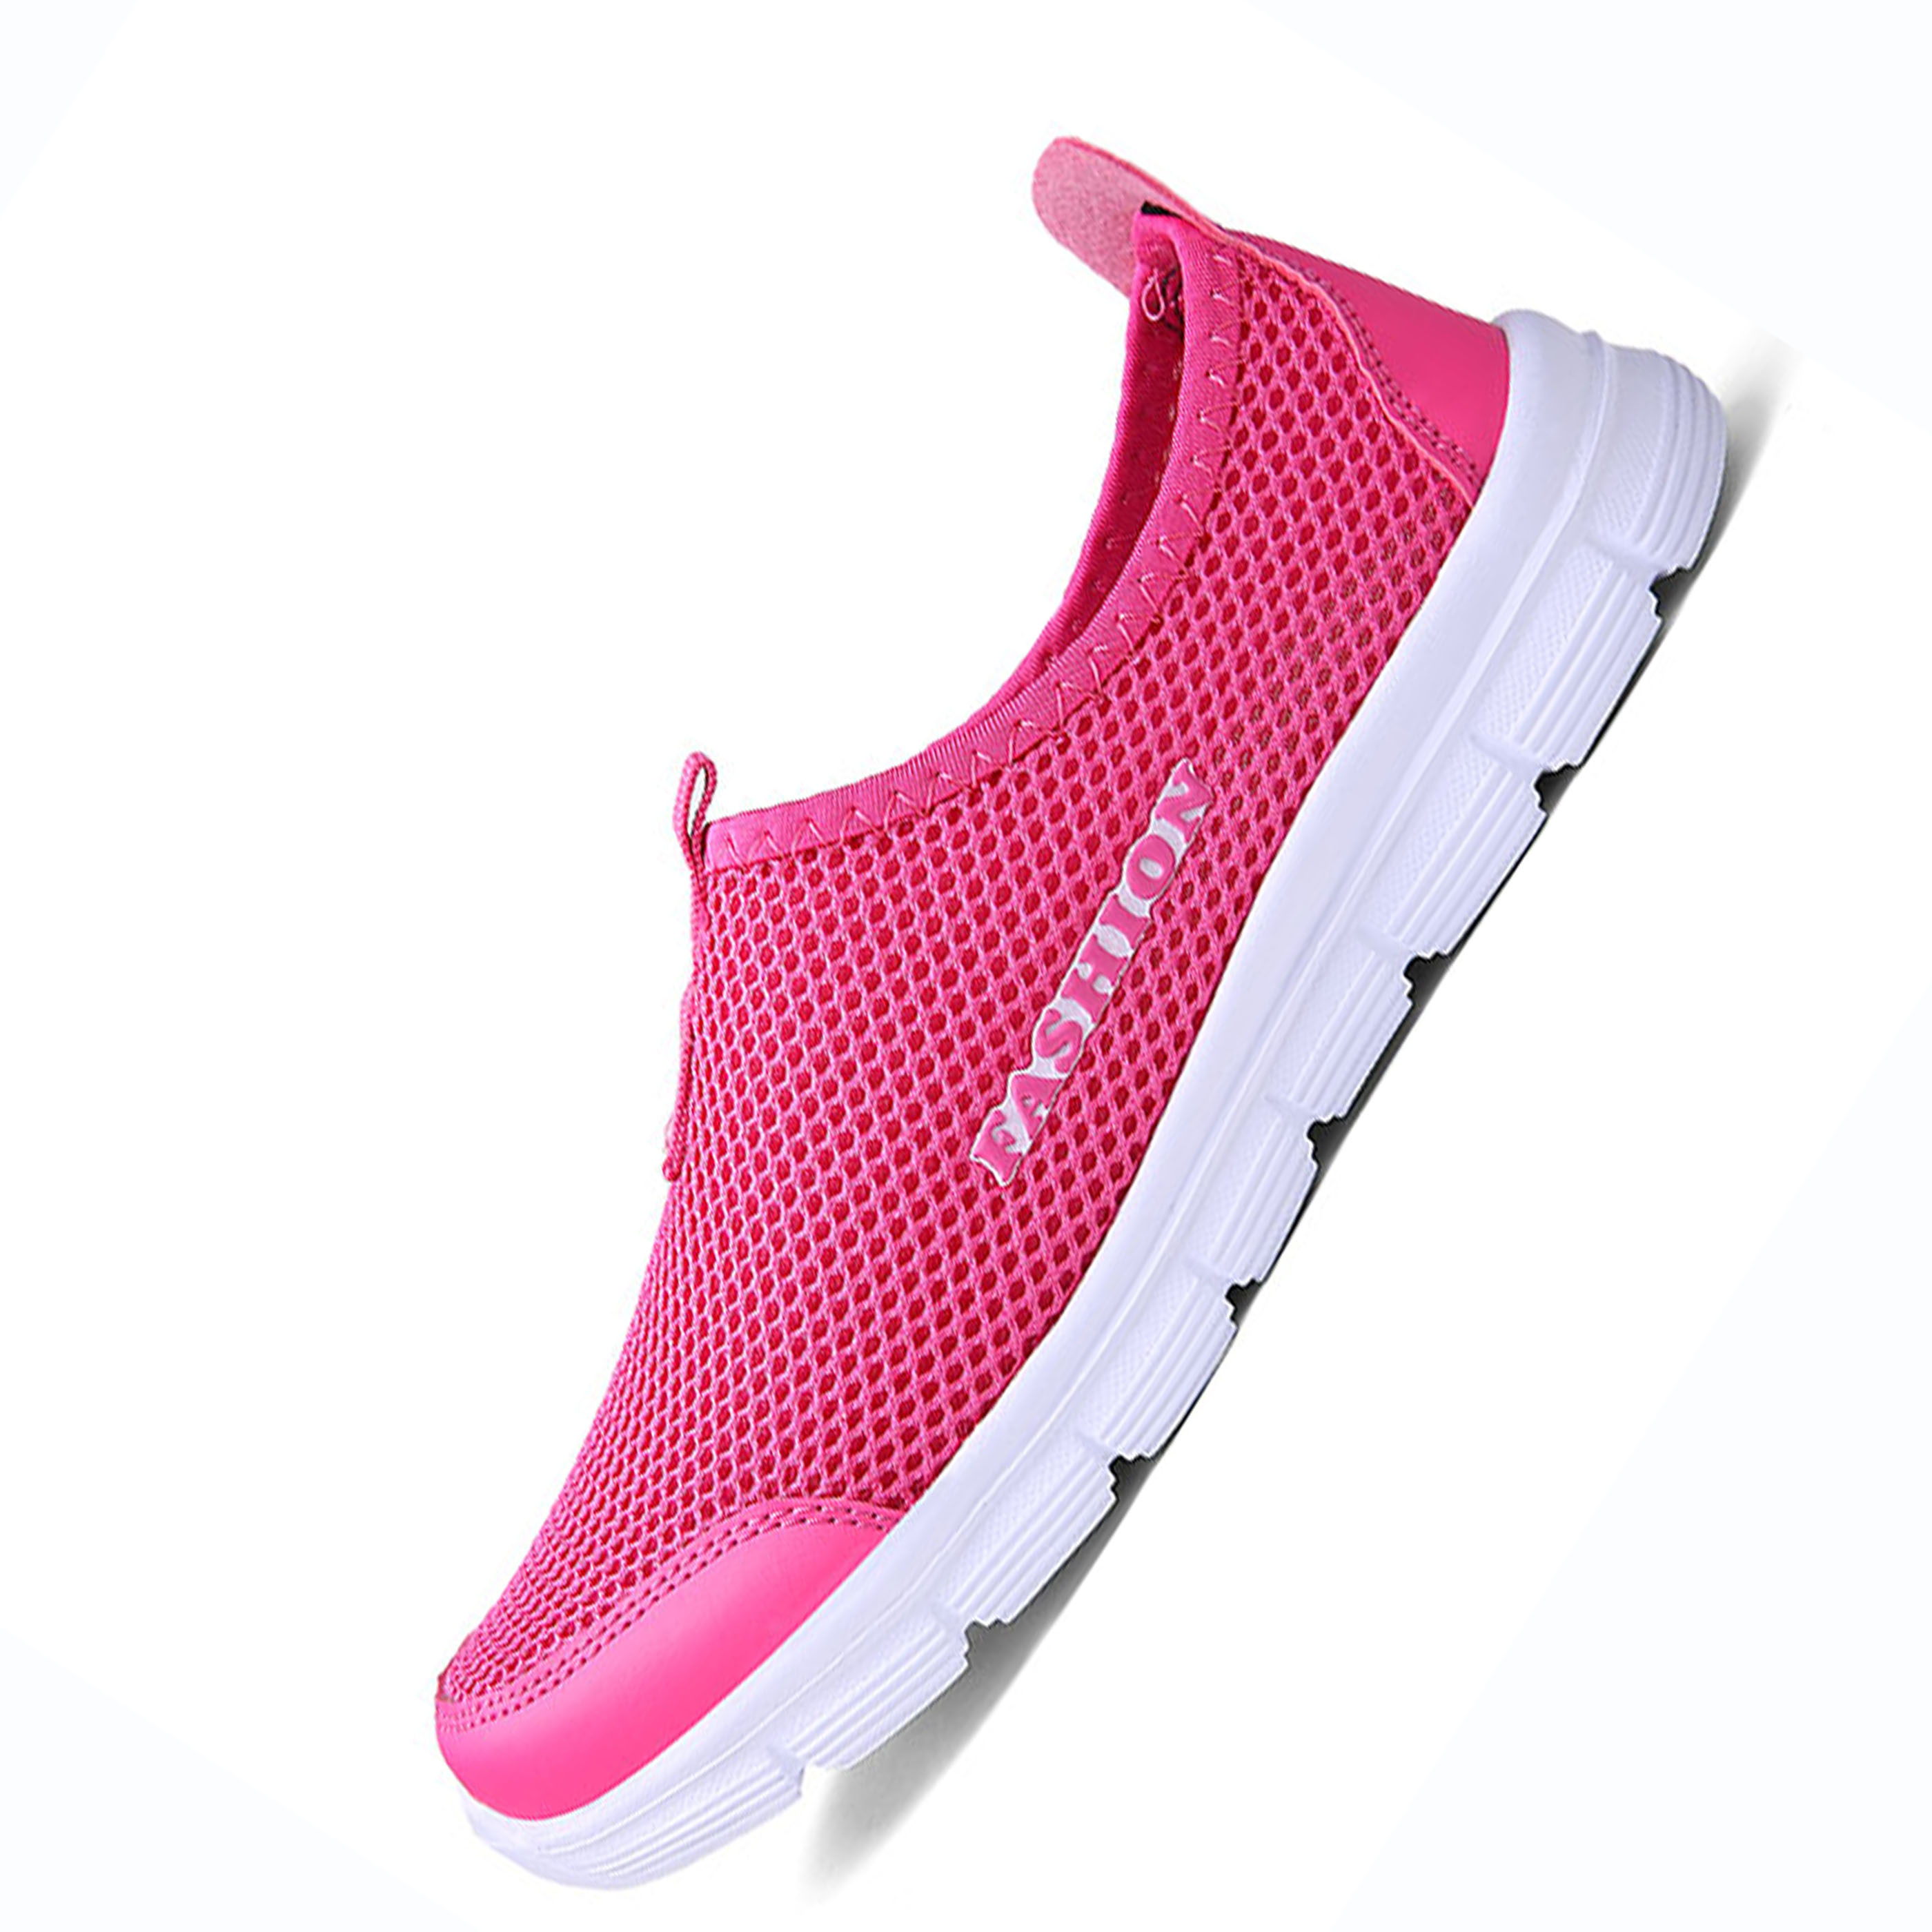 Women Casual Shoes Flat Lady Women's Fashion Air Mesh Summer Shoes Female Slip-on Plus Size 34-41 Shoes Zapatos Mujer women cool mesh breathable shoes female sport and outdoor soft bottom shoes lady casual slip on shoes zapatos de mujer